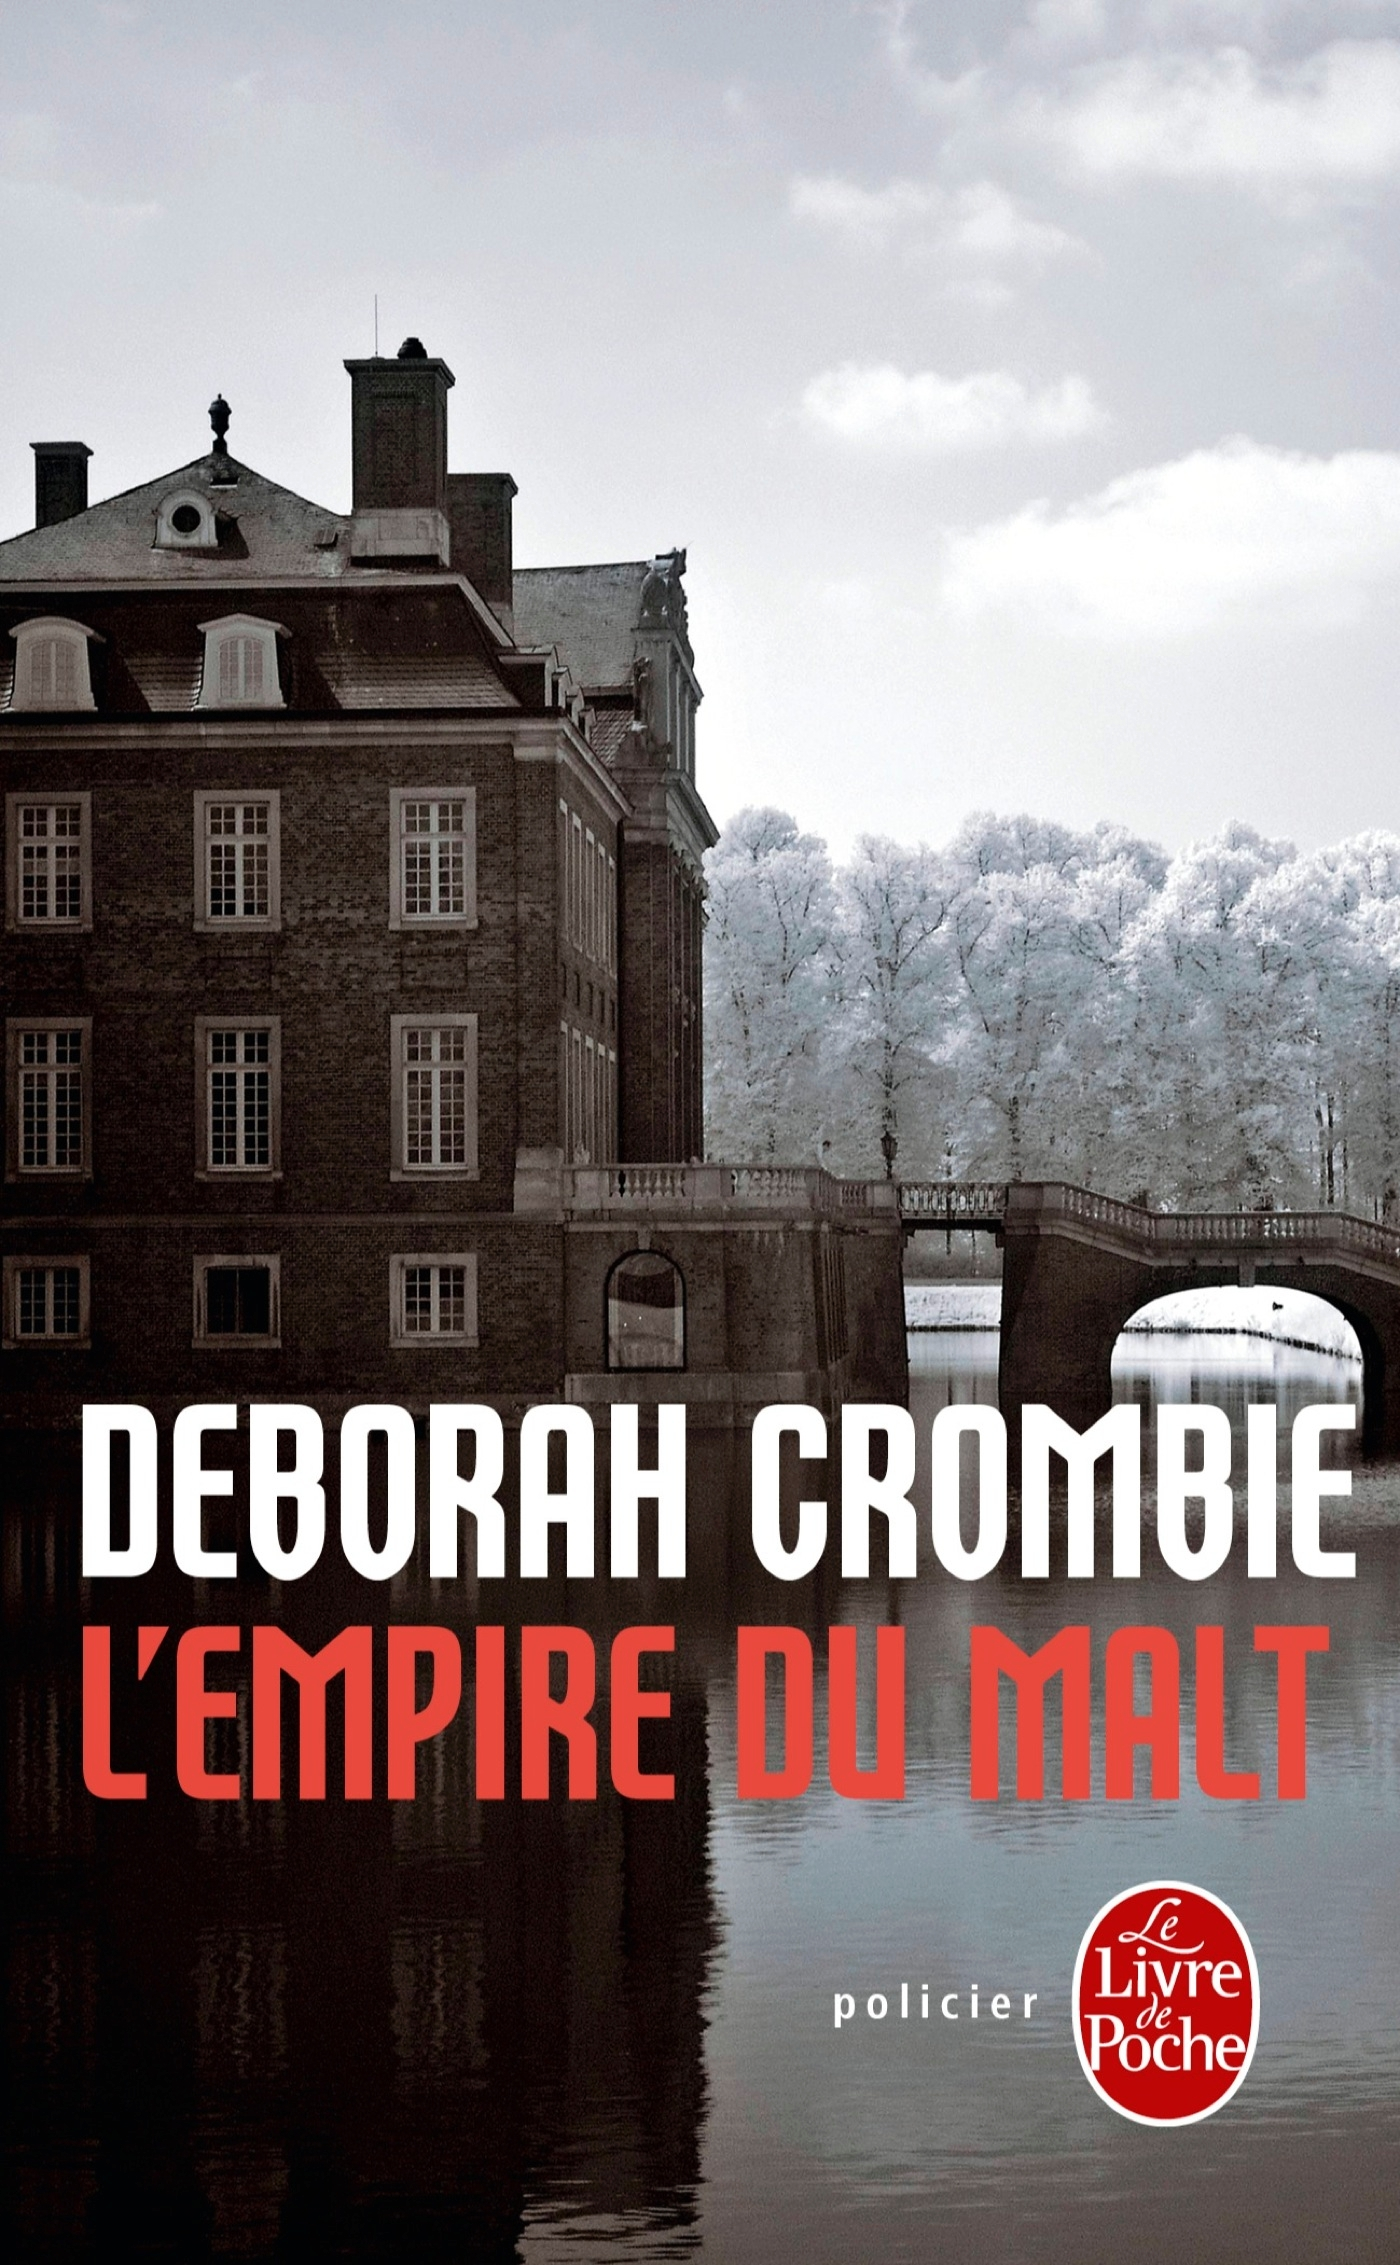 L'Empire du malt